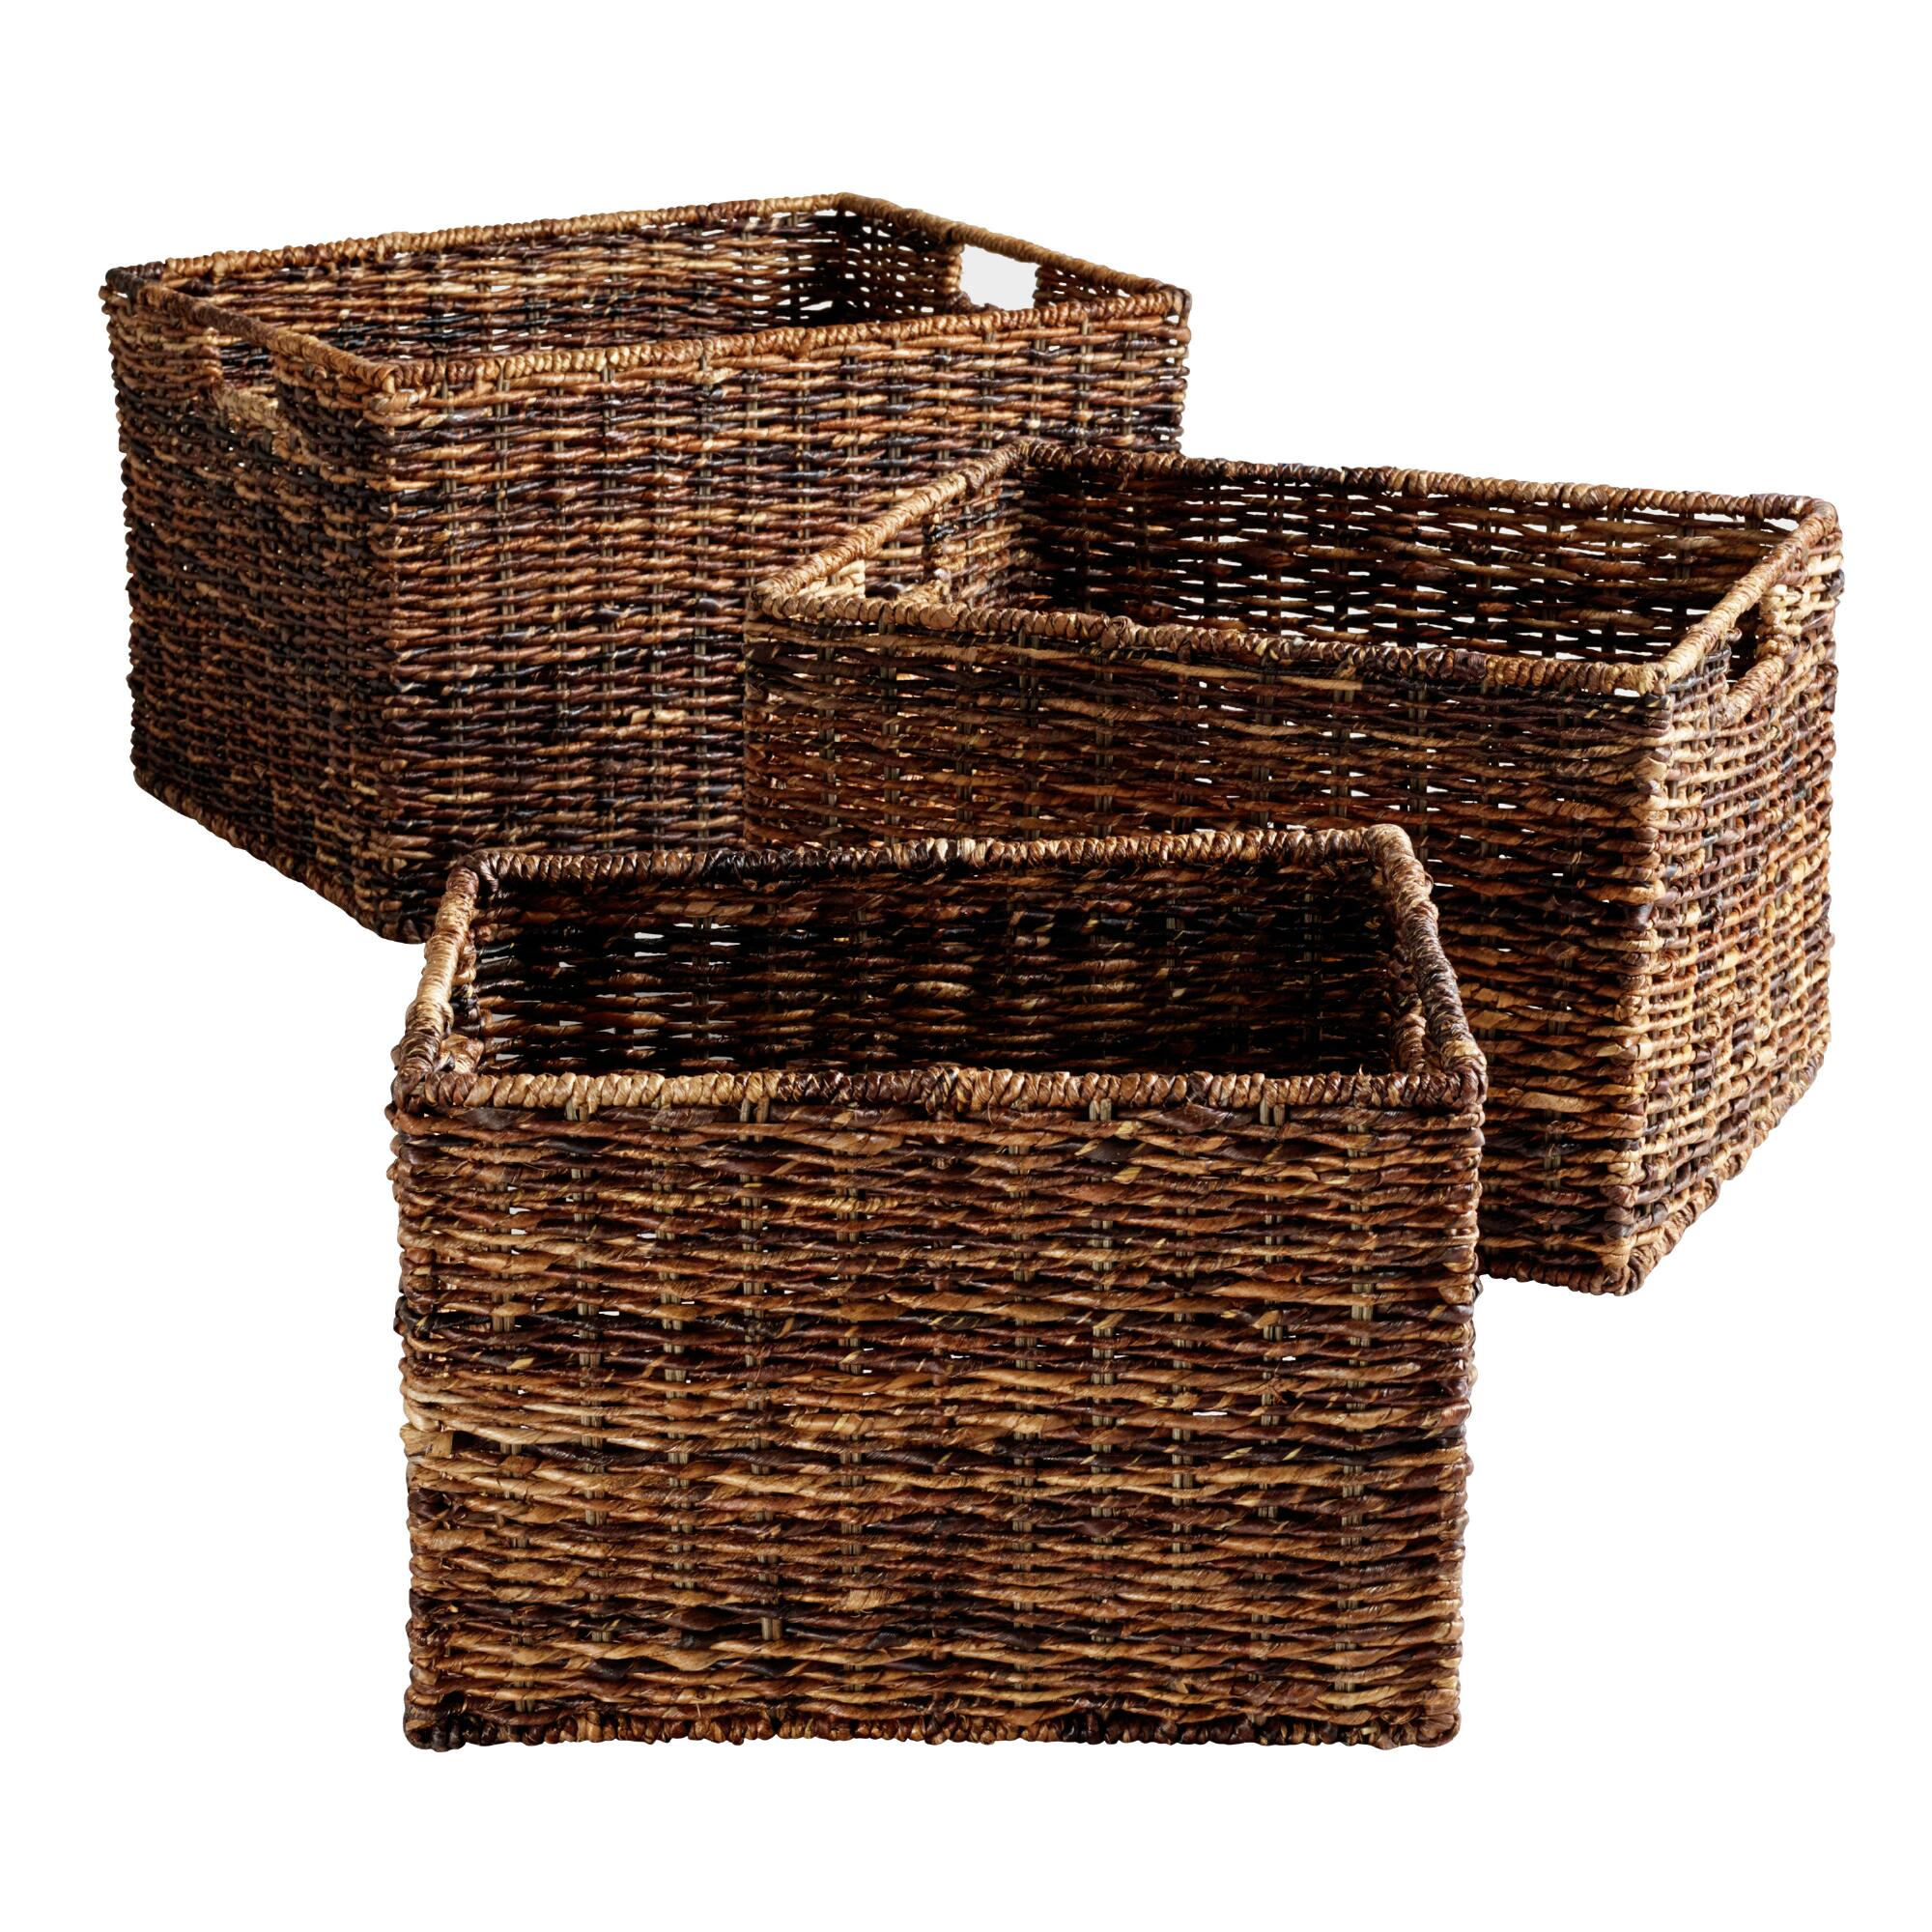 Madras Rectangular Baskets: Brown - Natural Fiber - Small by World Market Small